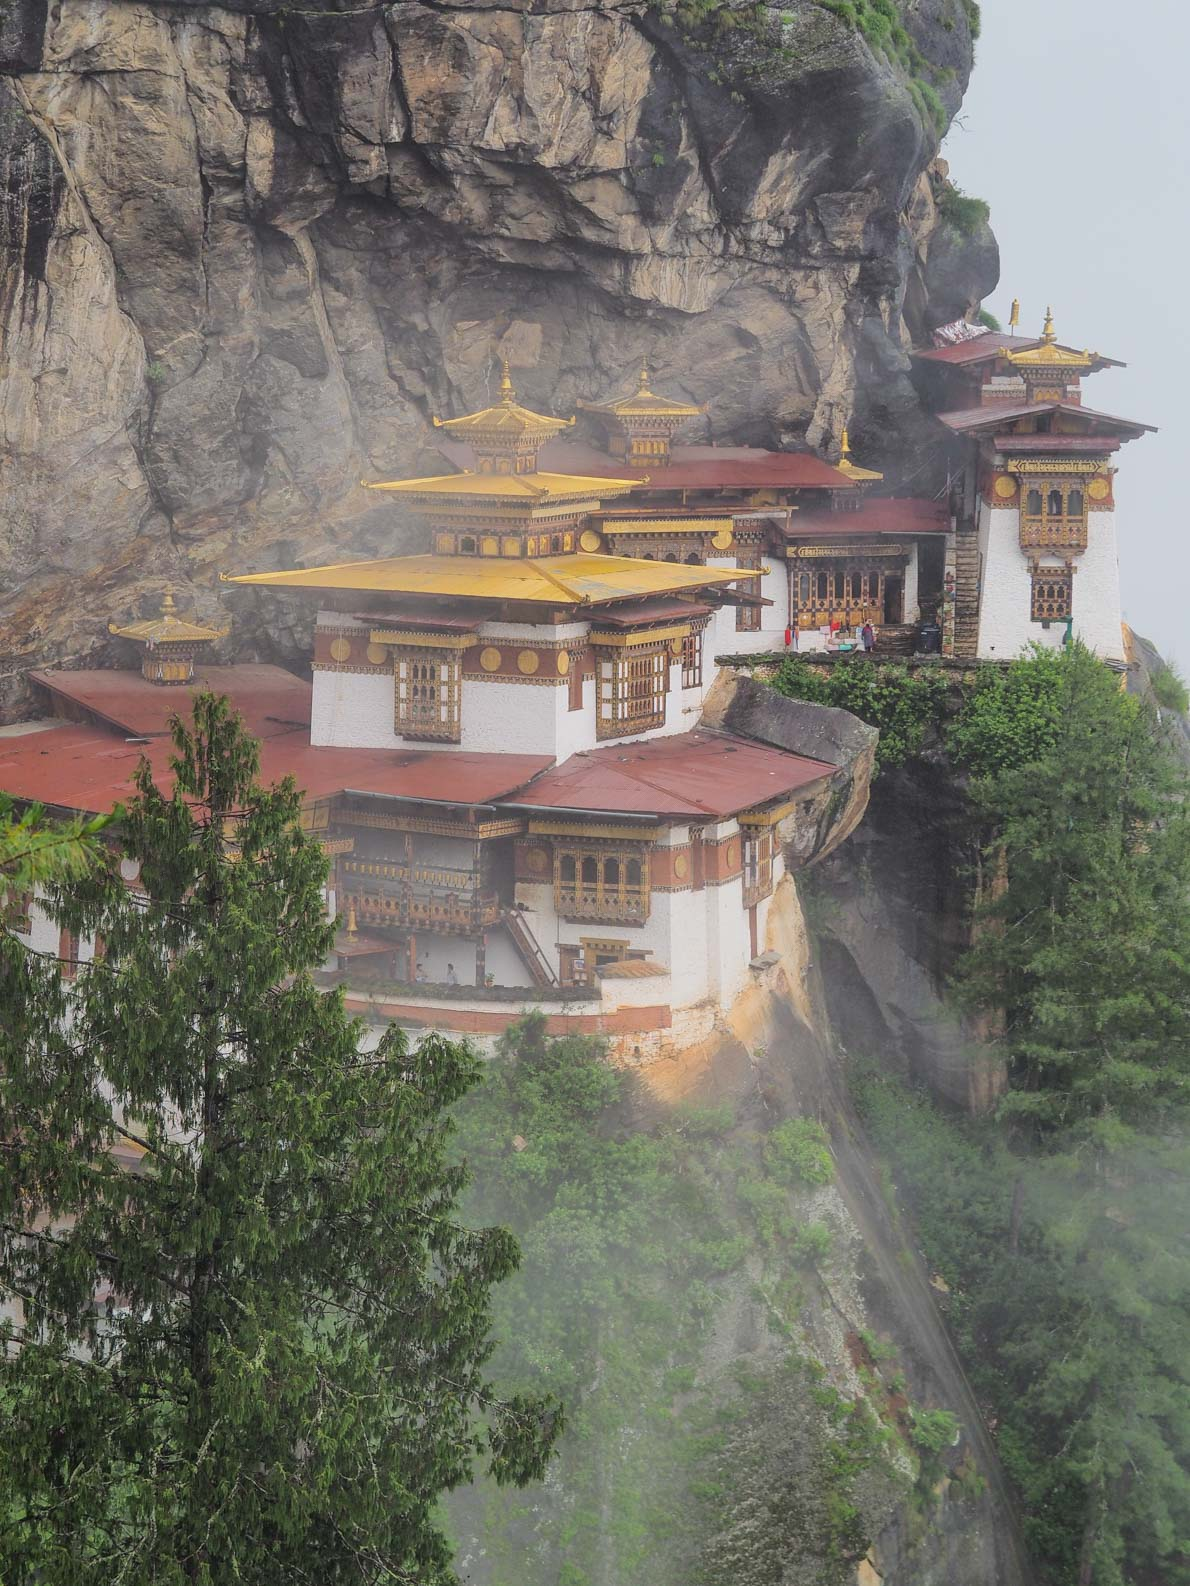 Travel guide to the Tiger Nest Monastery in Bhutan